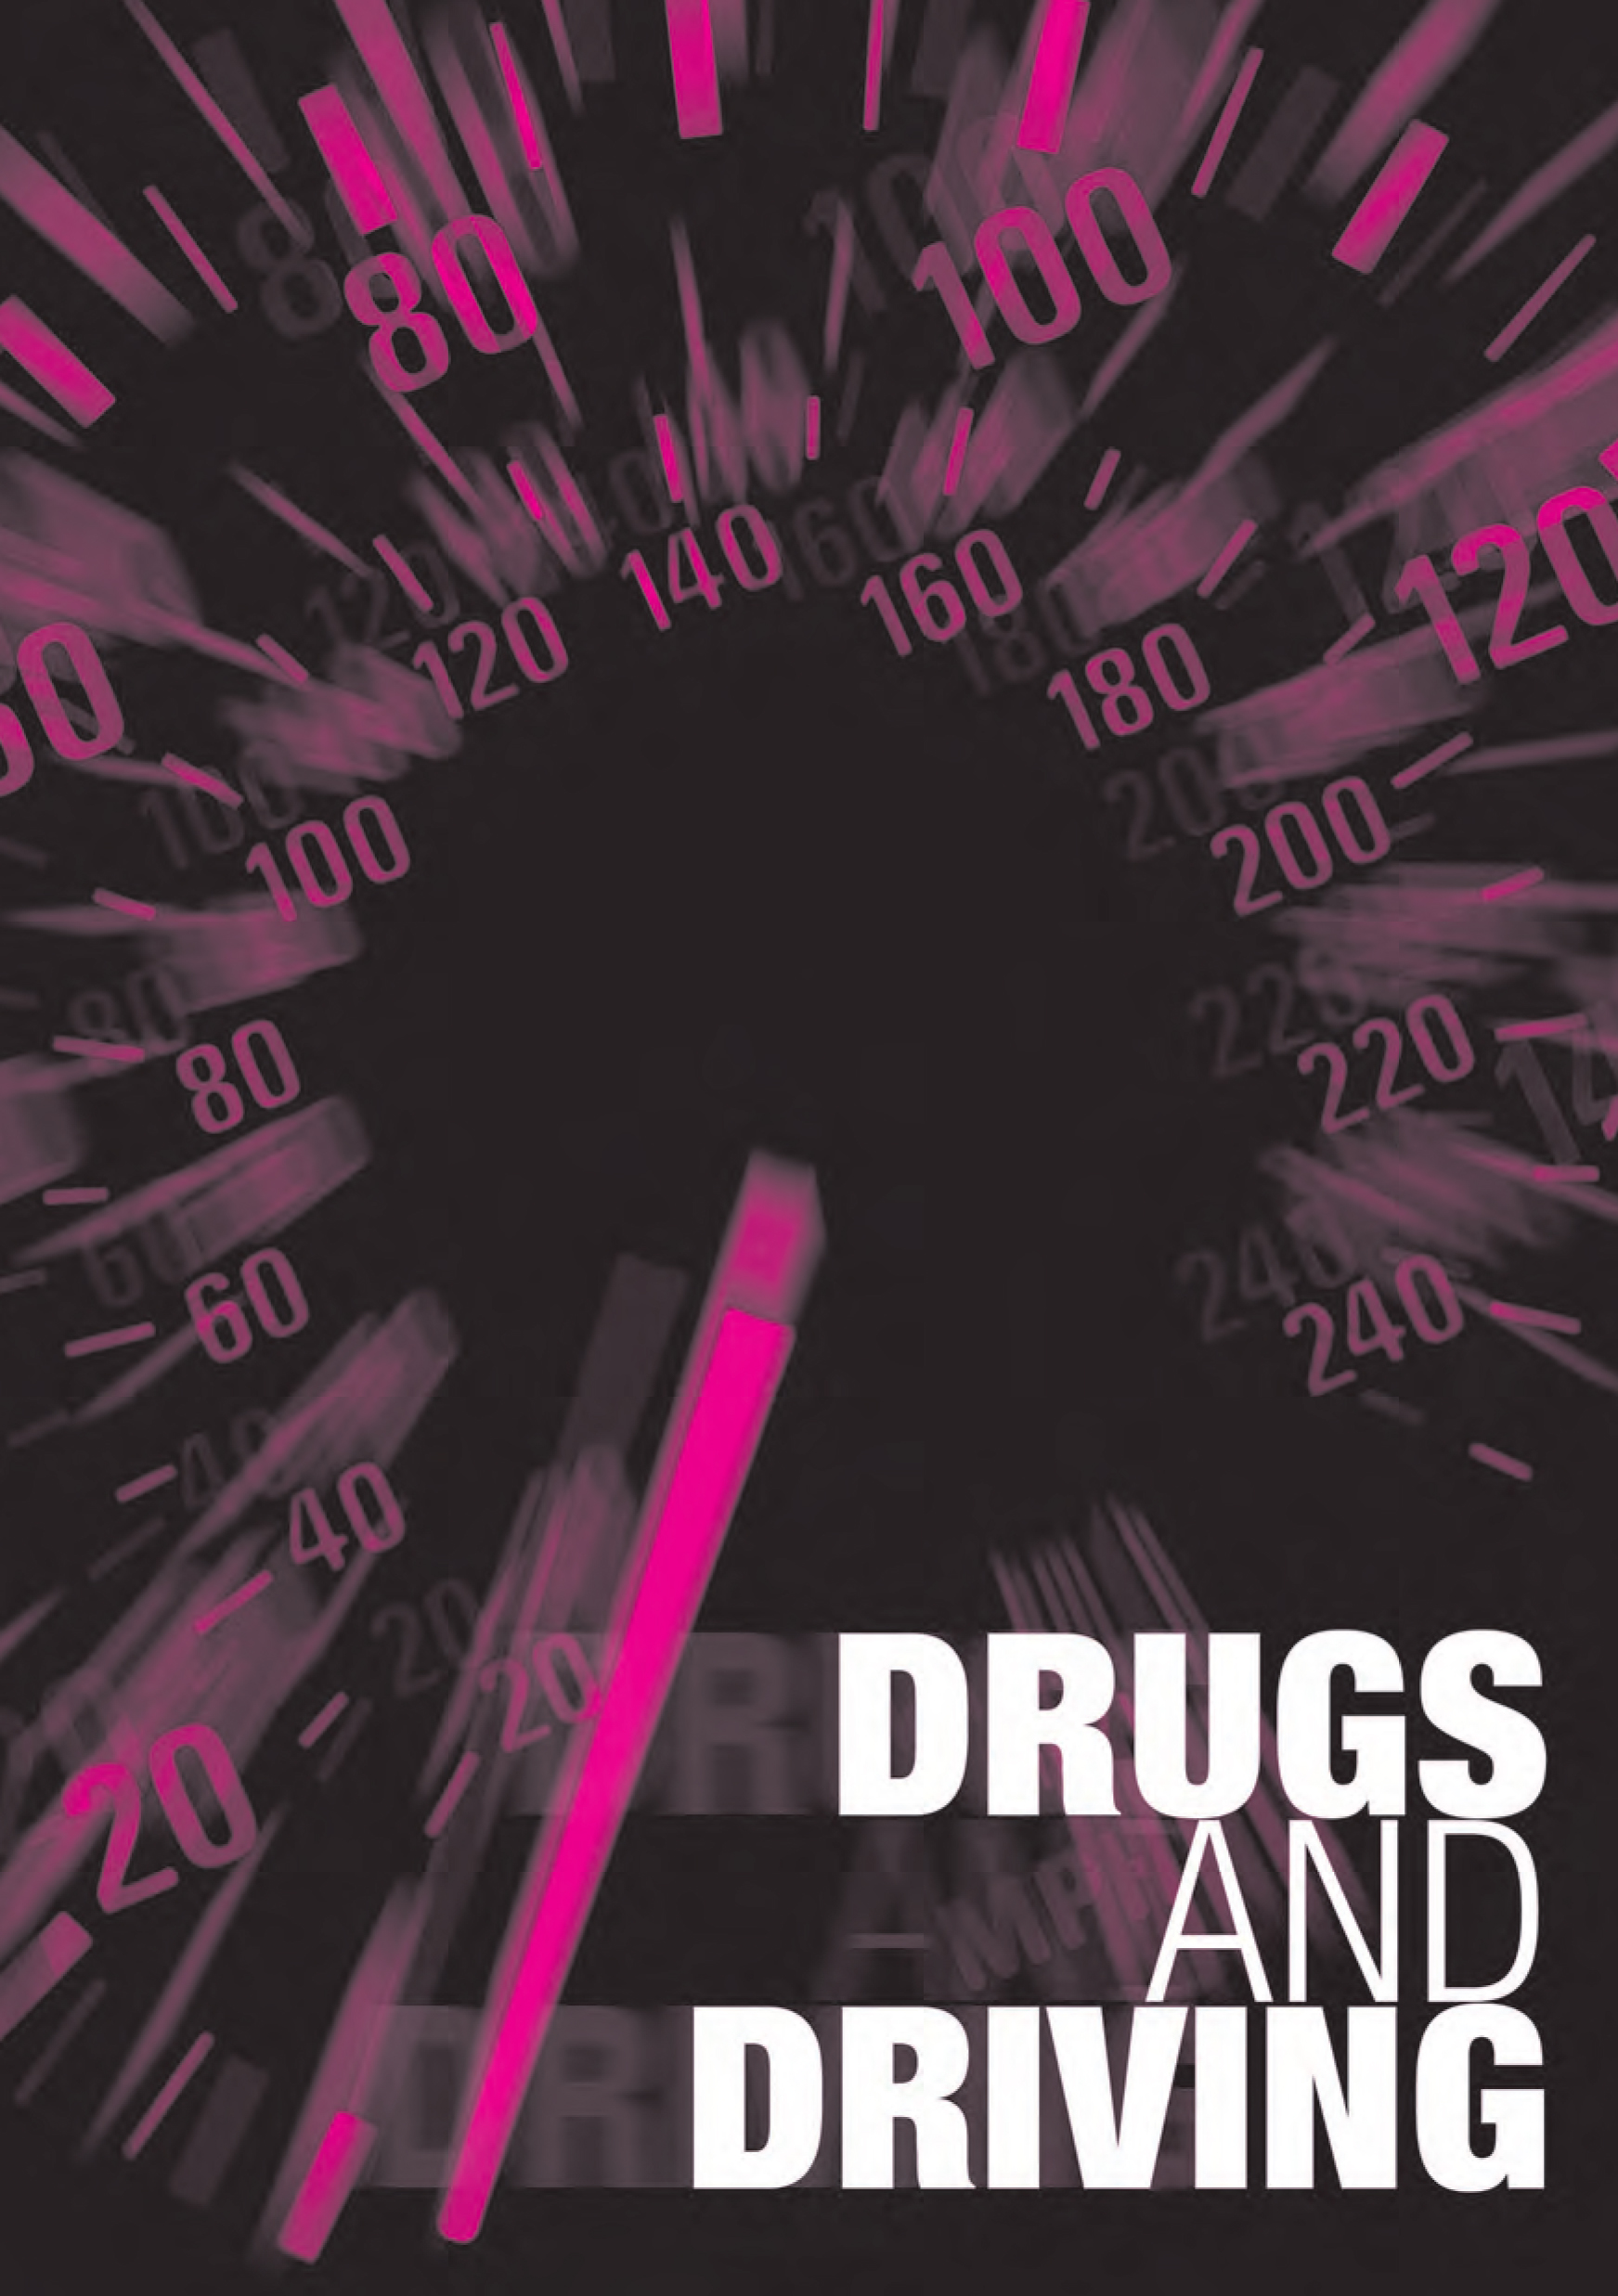 Drugs and Driving Information Booklet - NDARC (2005)